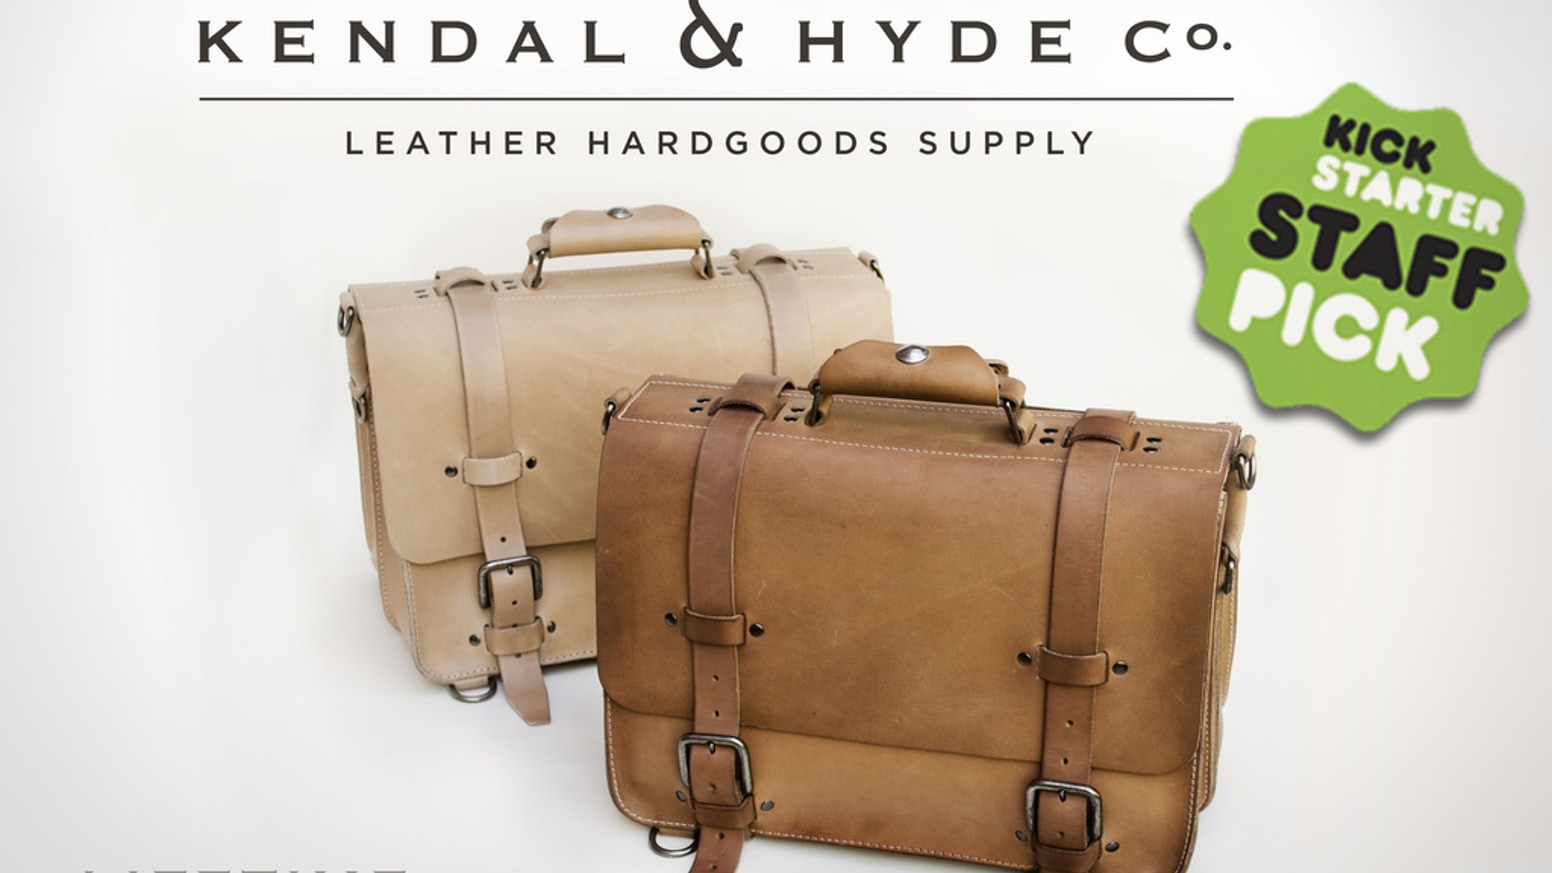 The campaign has ended, but  you can still get a Classic Satchel—now shipping from KendalHyde.com.